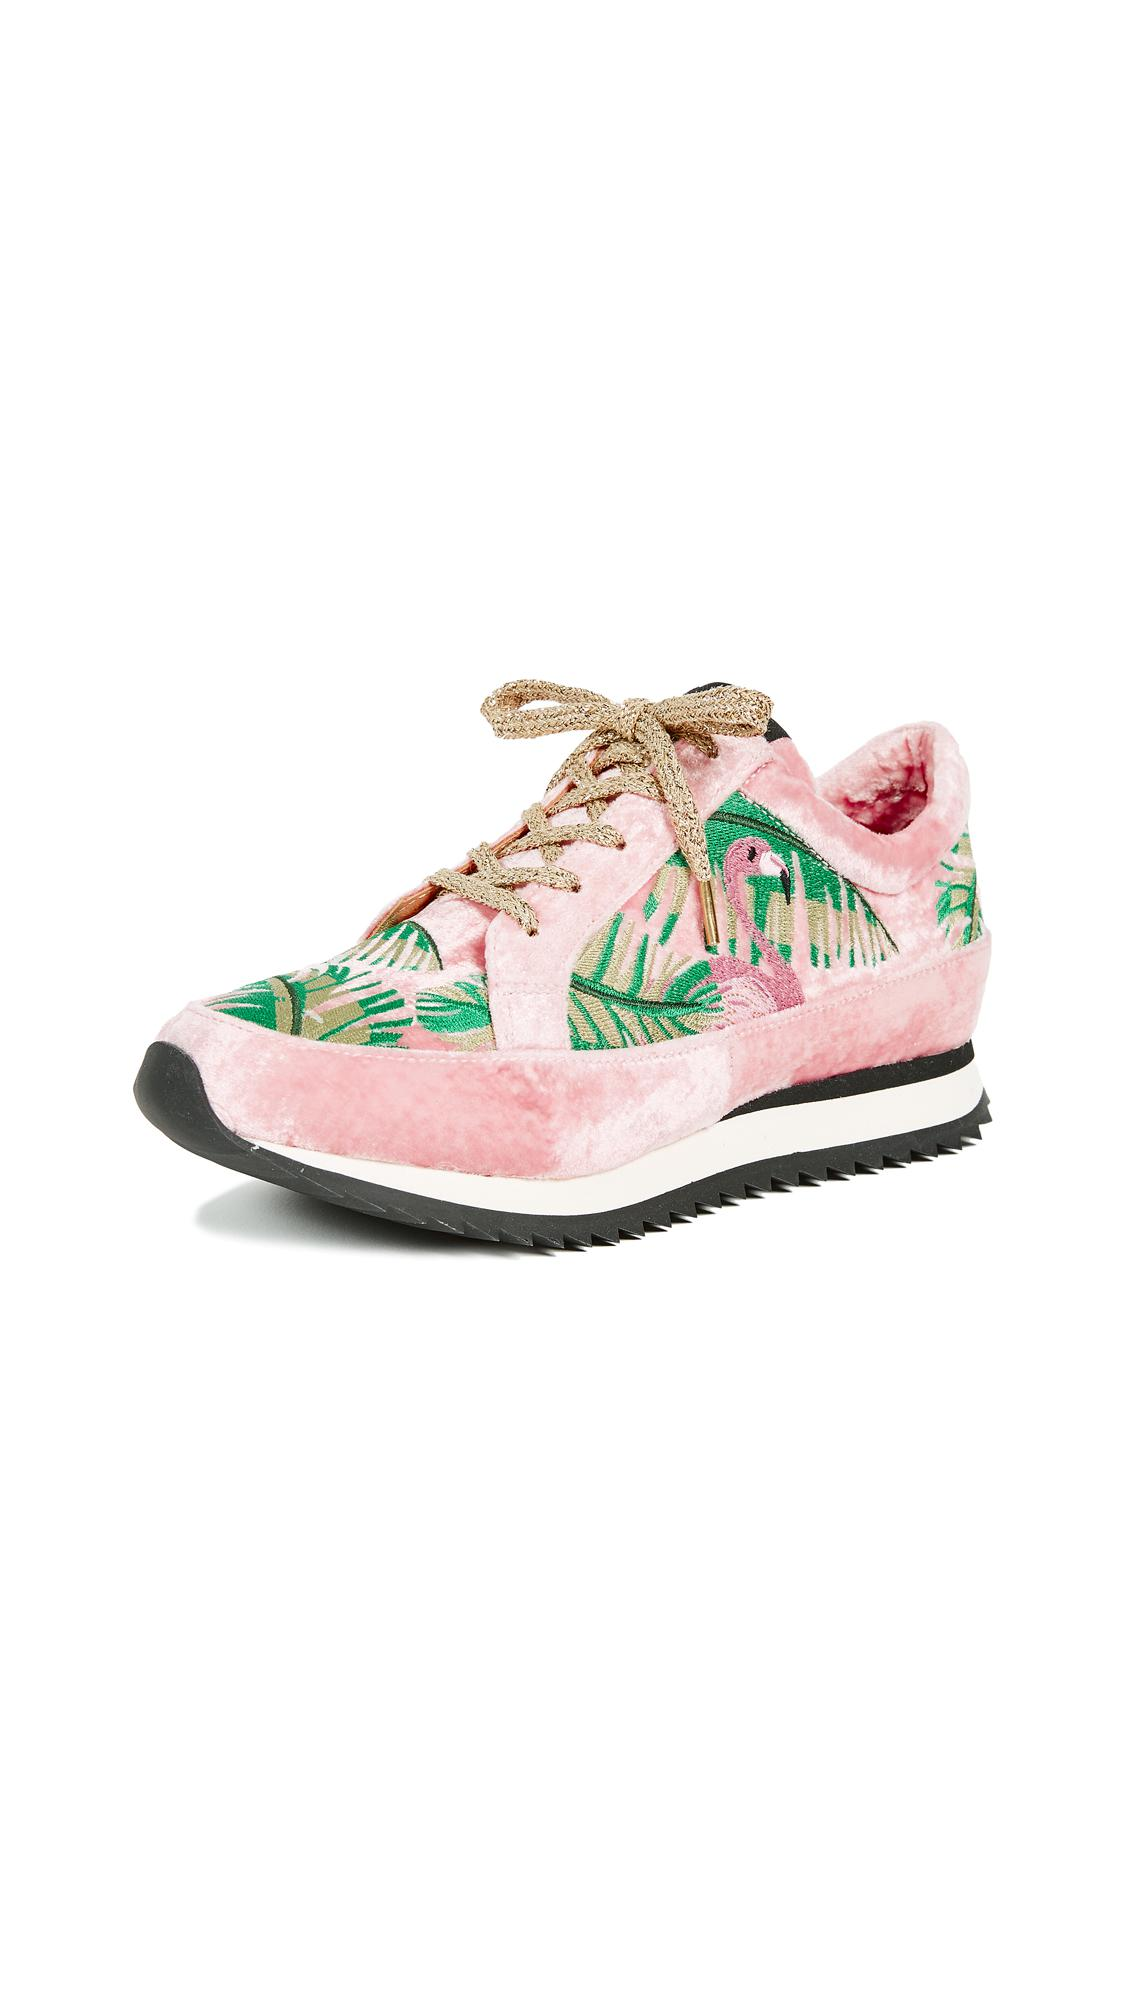 Charlotte Olympia Work It Sneakers w/ Tags pre order online shipping discount sale cheap fast delivery clearance clearance buy cheap outlet locations PykDx7005M